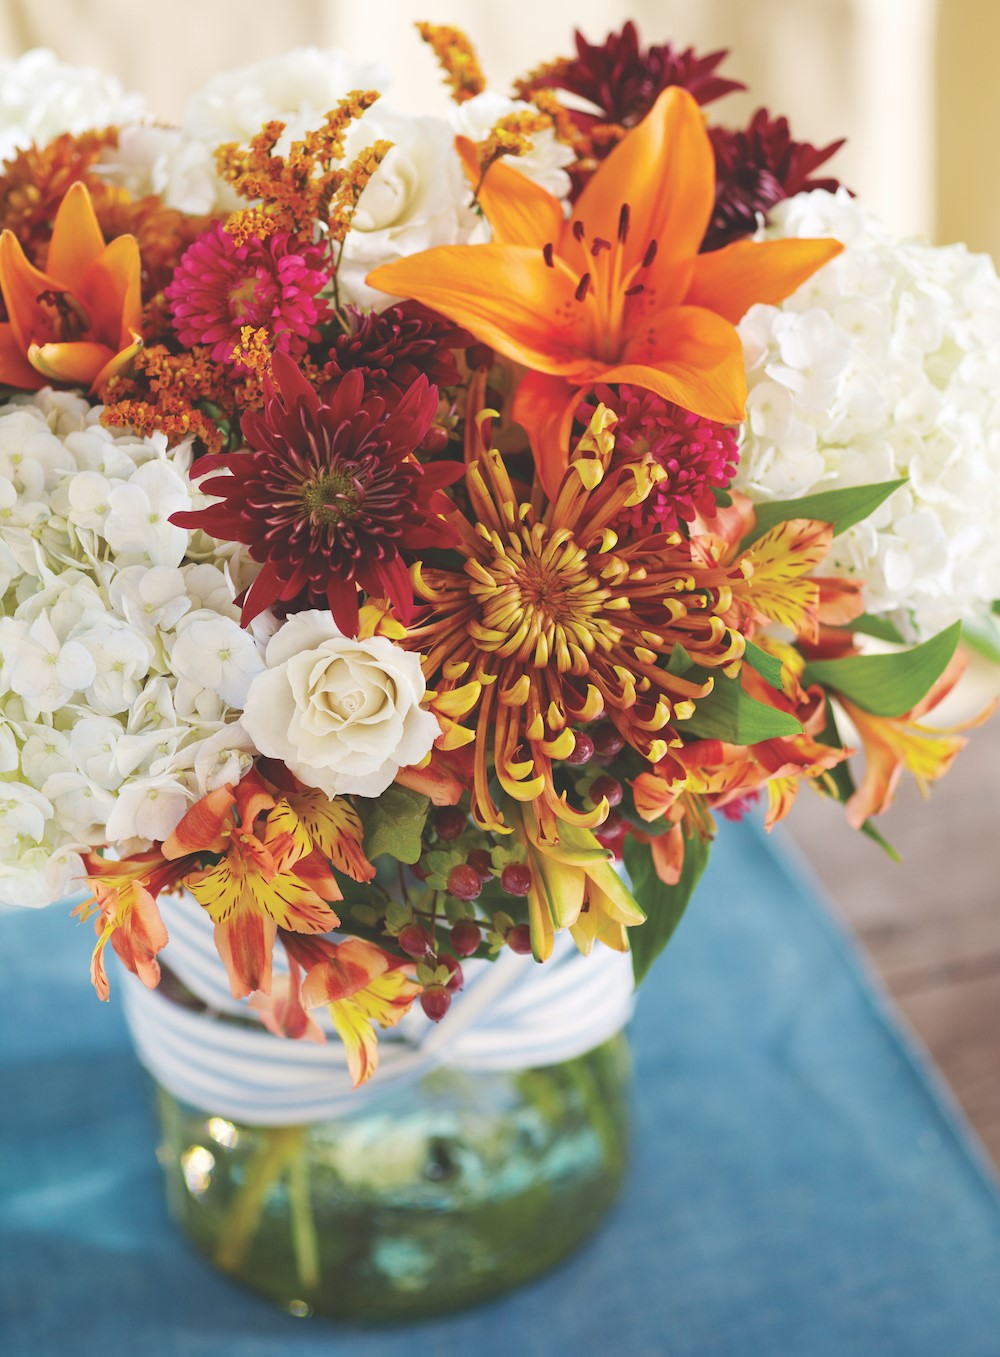 Arrangement of lillies, tiger lillies, hydrangeas, and red and orange mums